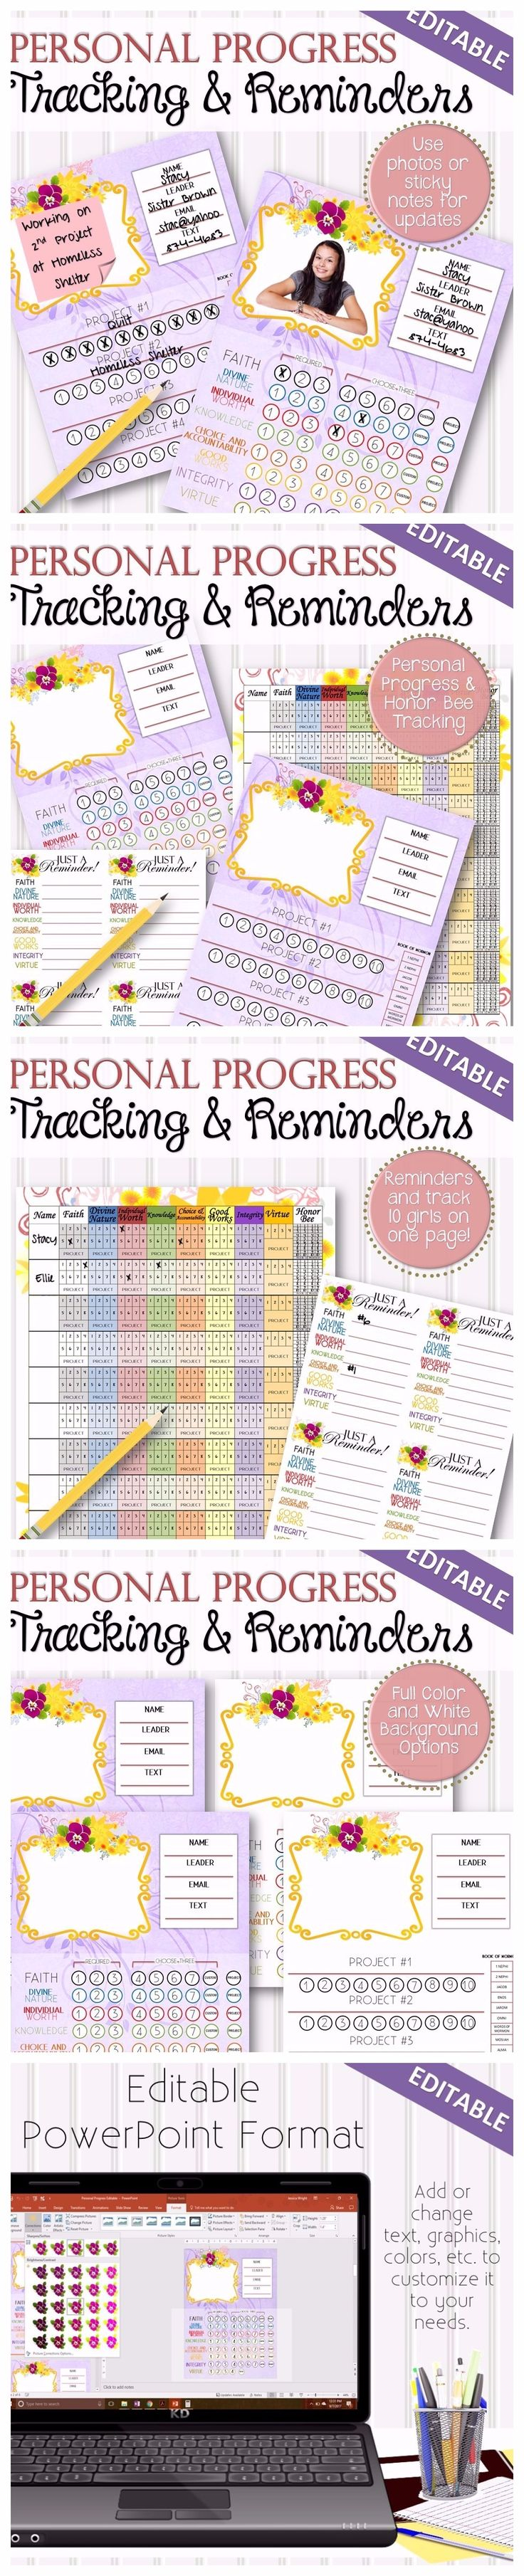 """A completely editable and easy way for parents, leaders and young women to track their honor bee and personal progress . Place a photo or sticky notes for easy updates, individual tracking or multiple tracking per page (up to 10 girls), along with coordinating reminder notes! Comes in a PDF format AND an editable PowerPoint format where you can change the fonts, sizing, headers, titles, content, graphics, create calendars, etc! Formatted to fit a 8.5""""x11"""" page."""